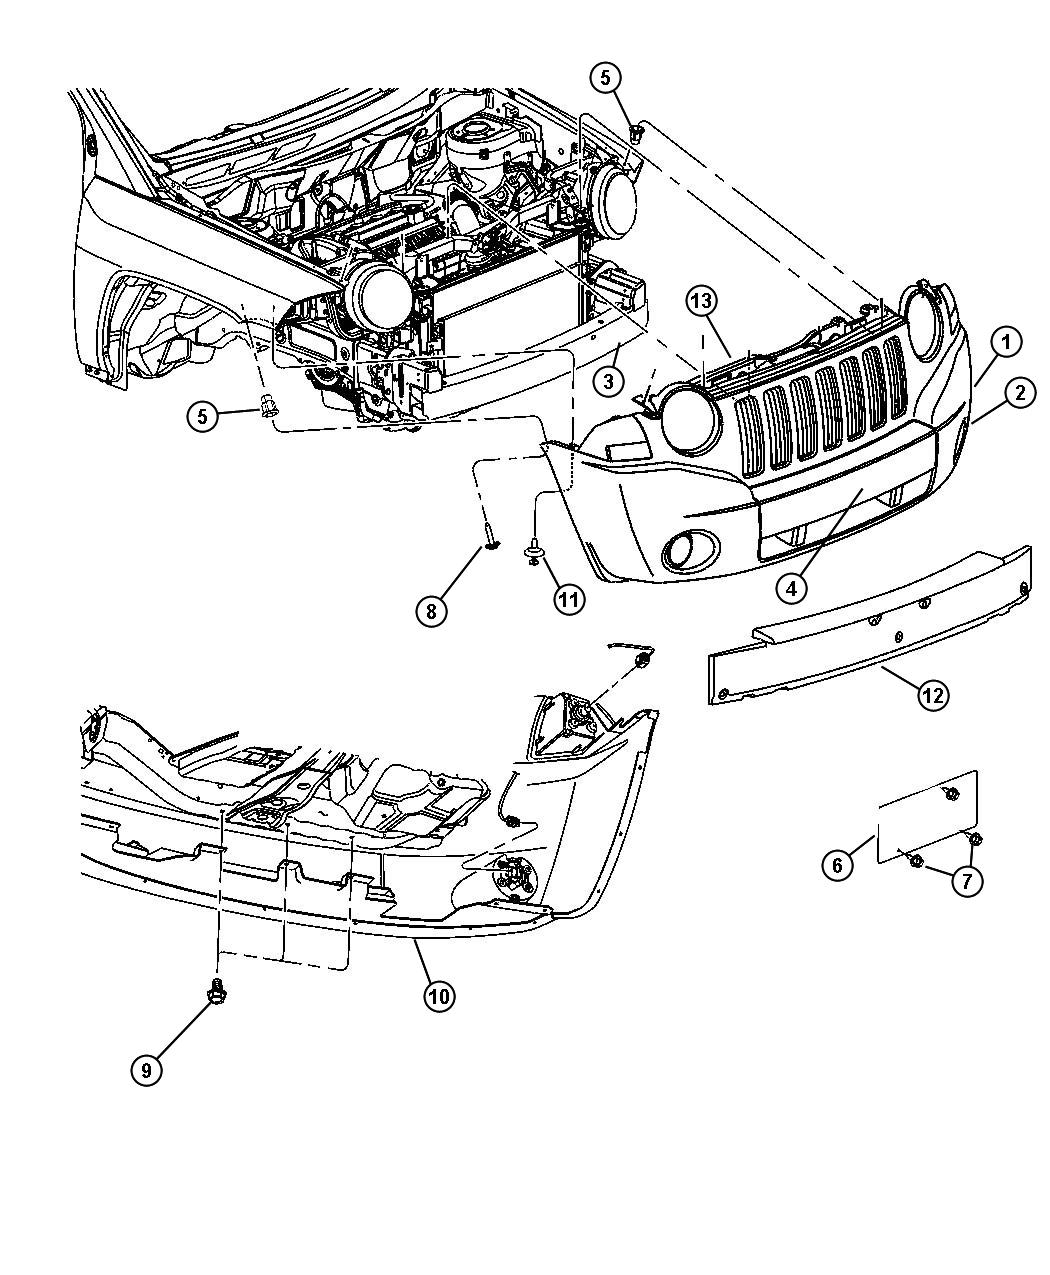 Jeep Patriot Parts Diagram 2007 Front Bumper